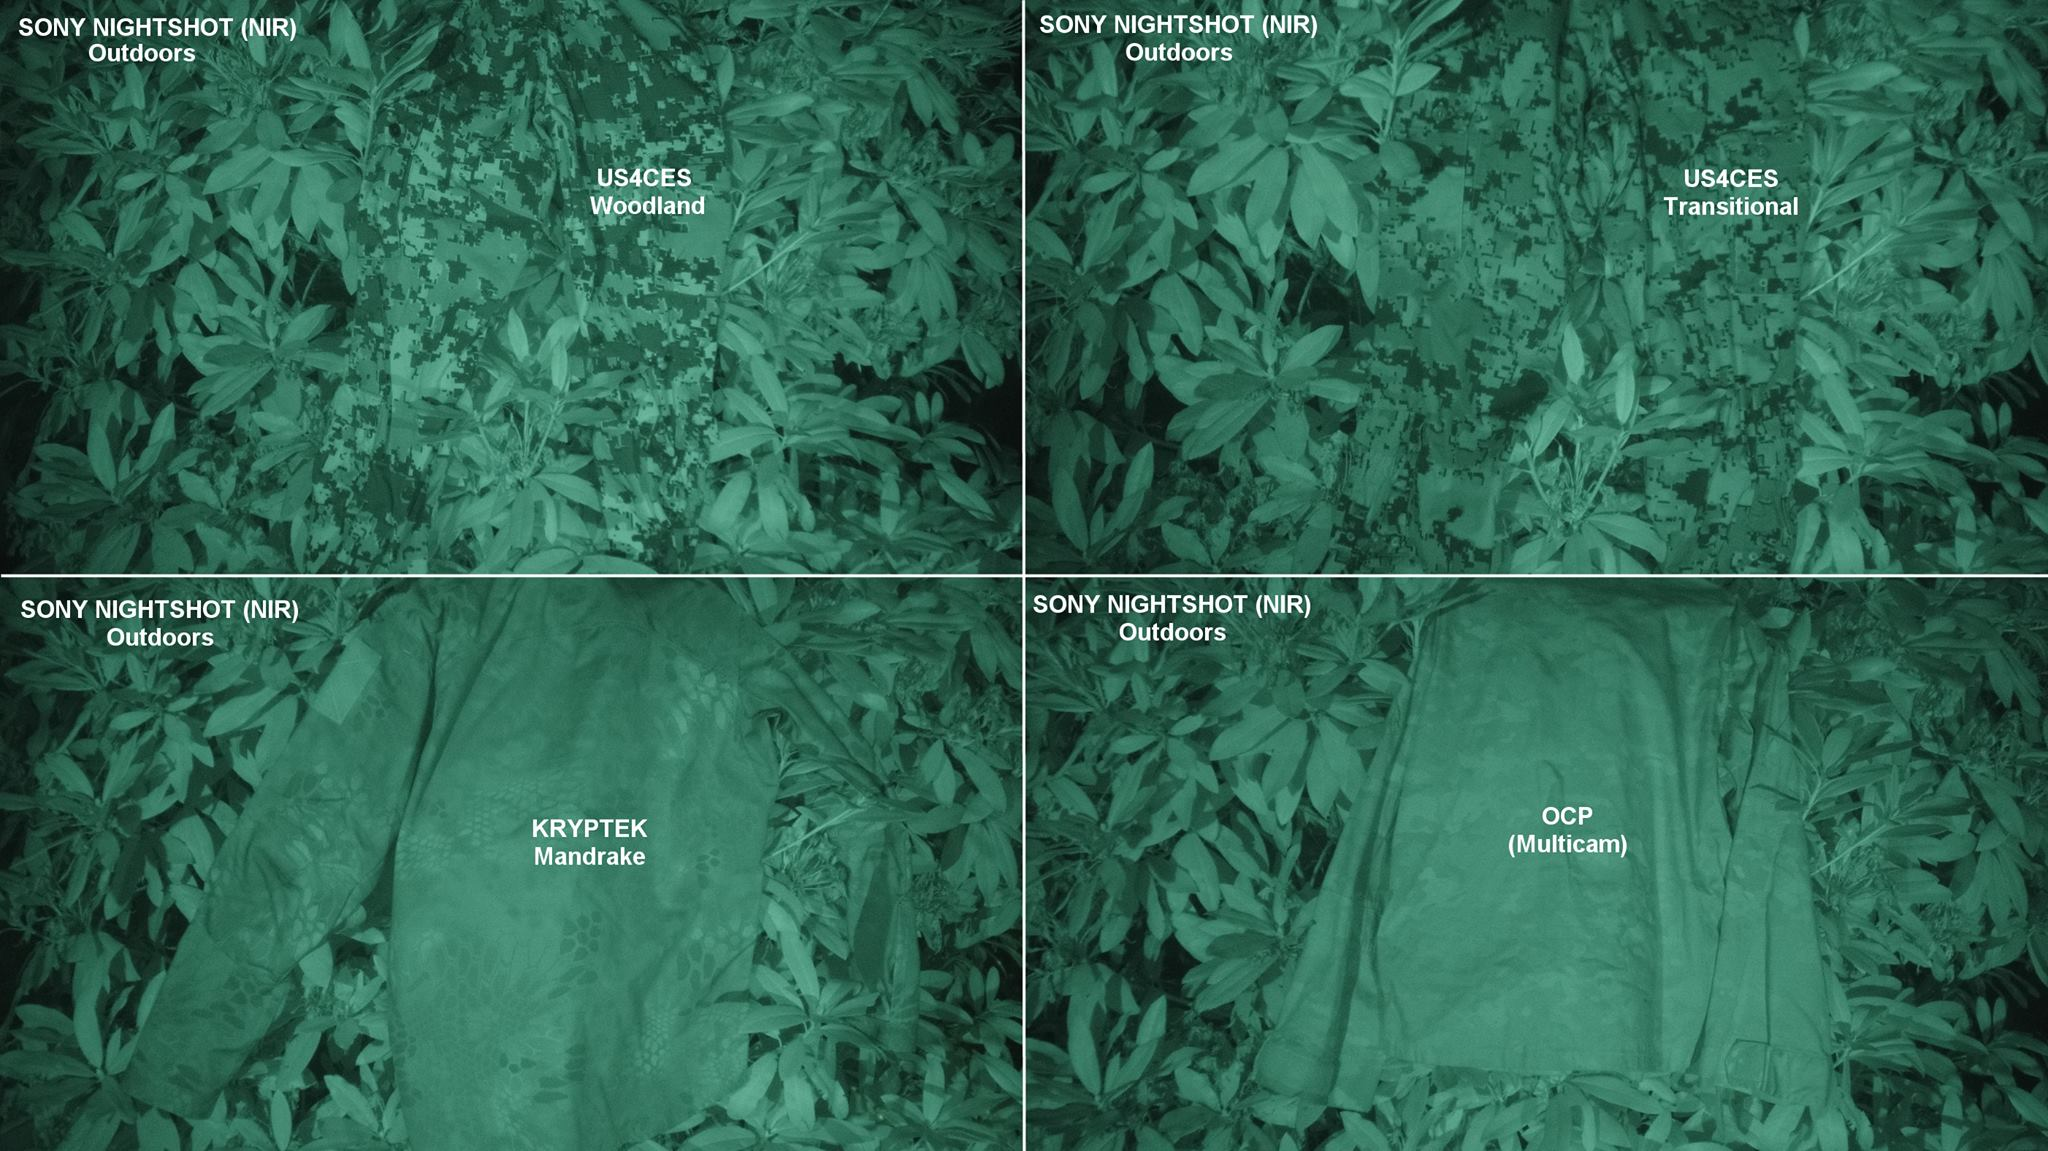 d45bc6dccdba Night Vision Device comparison photos of US4CES and some of the U.S. Army  Phase IV camouflage patterns